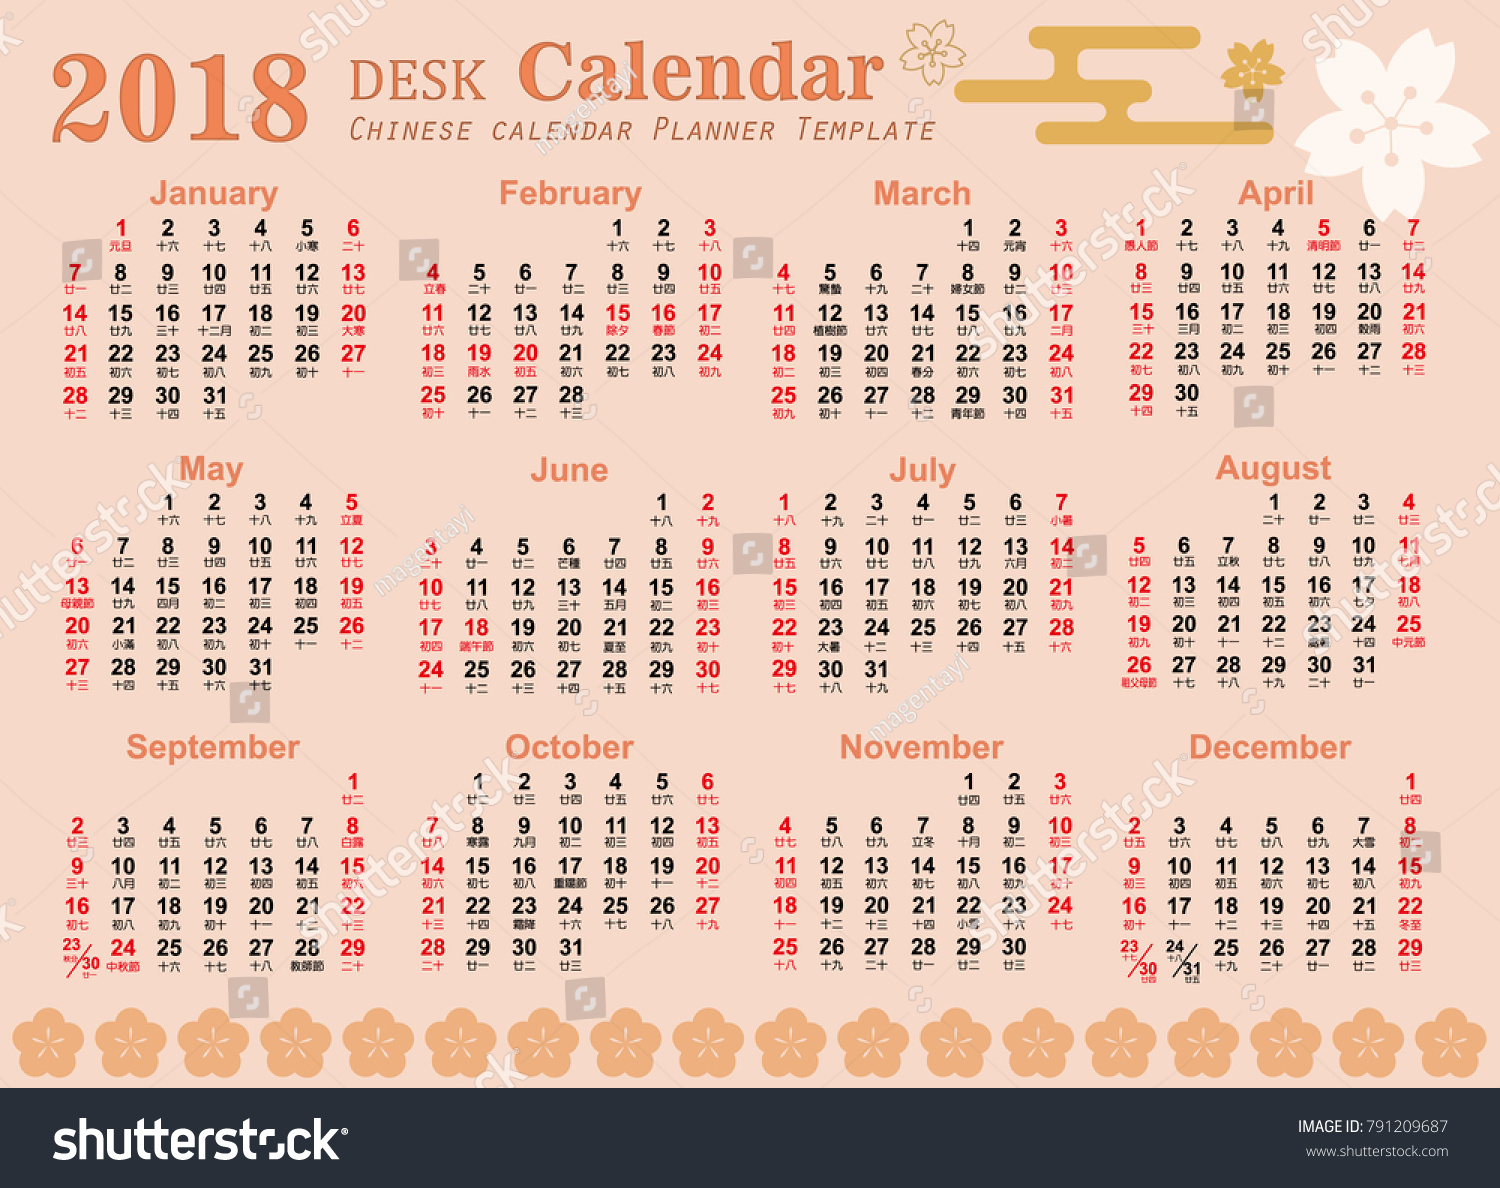 Chinese Calendar Planner Template 2018 Year Stock Vector Royalty